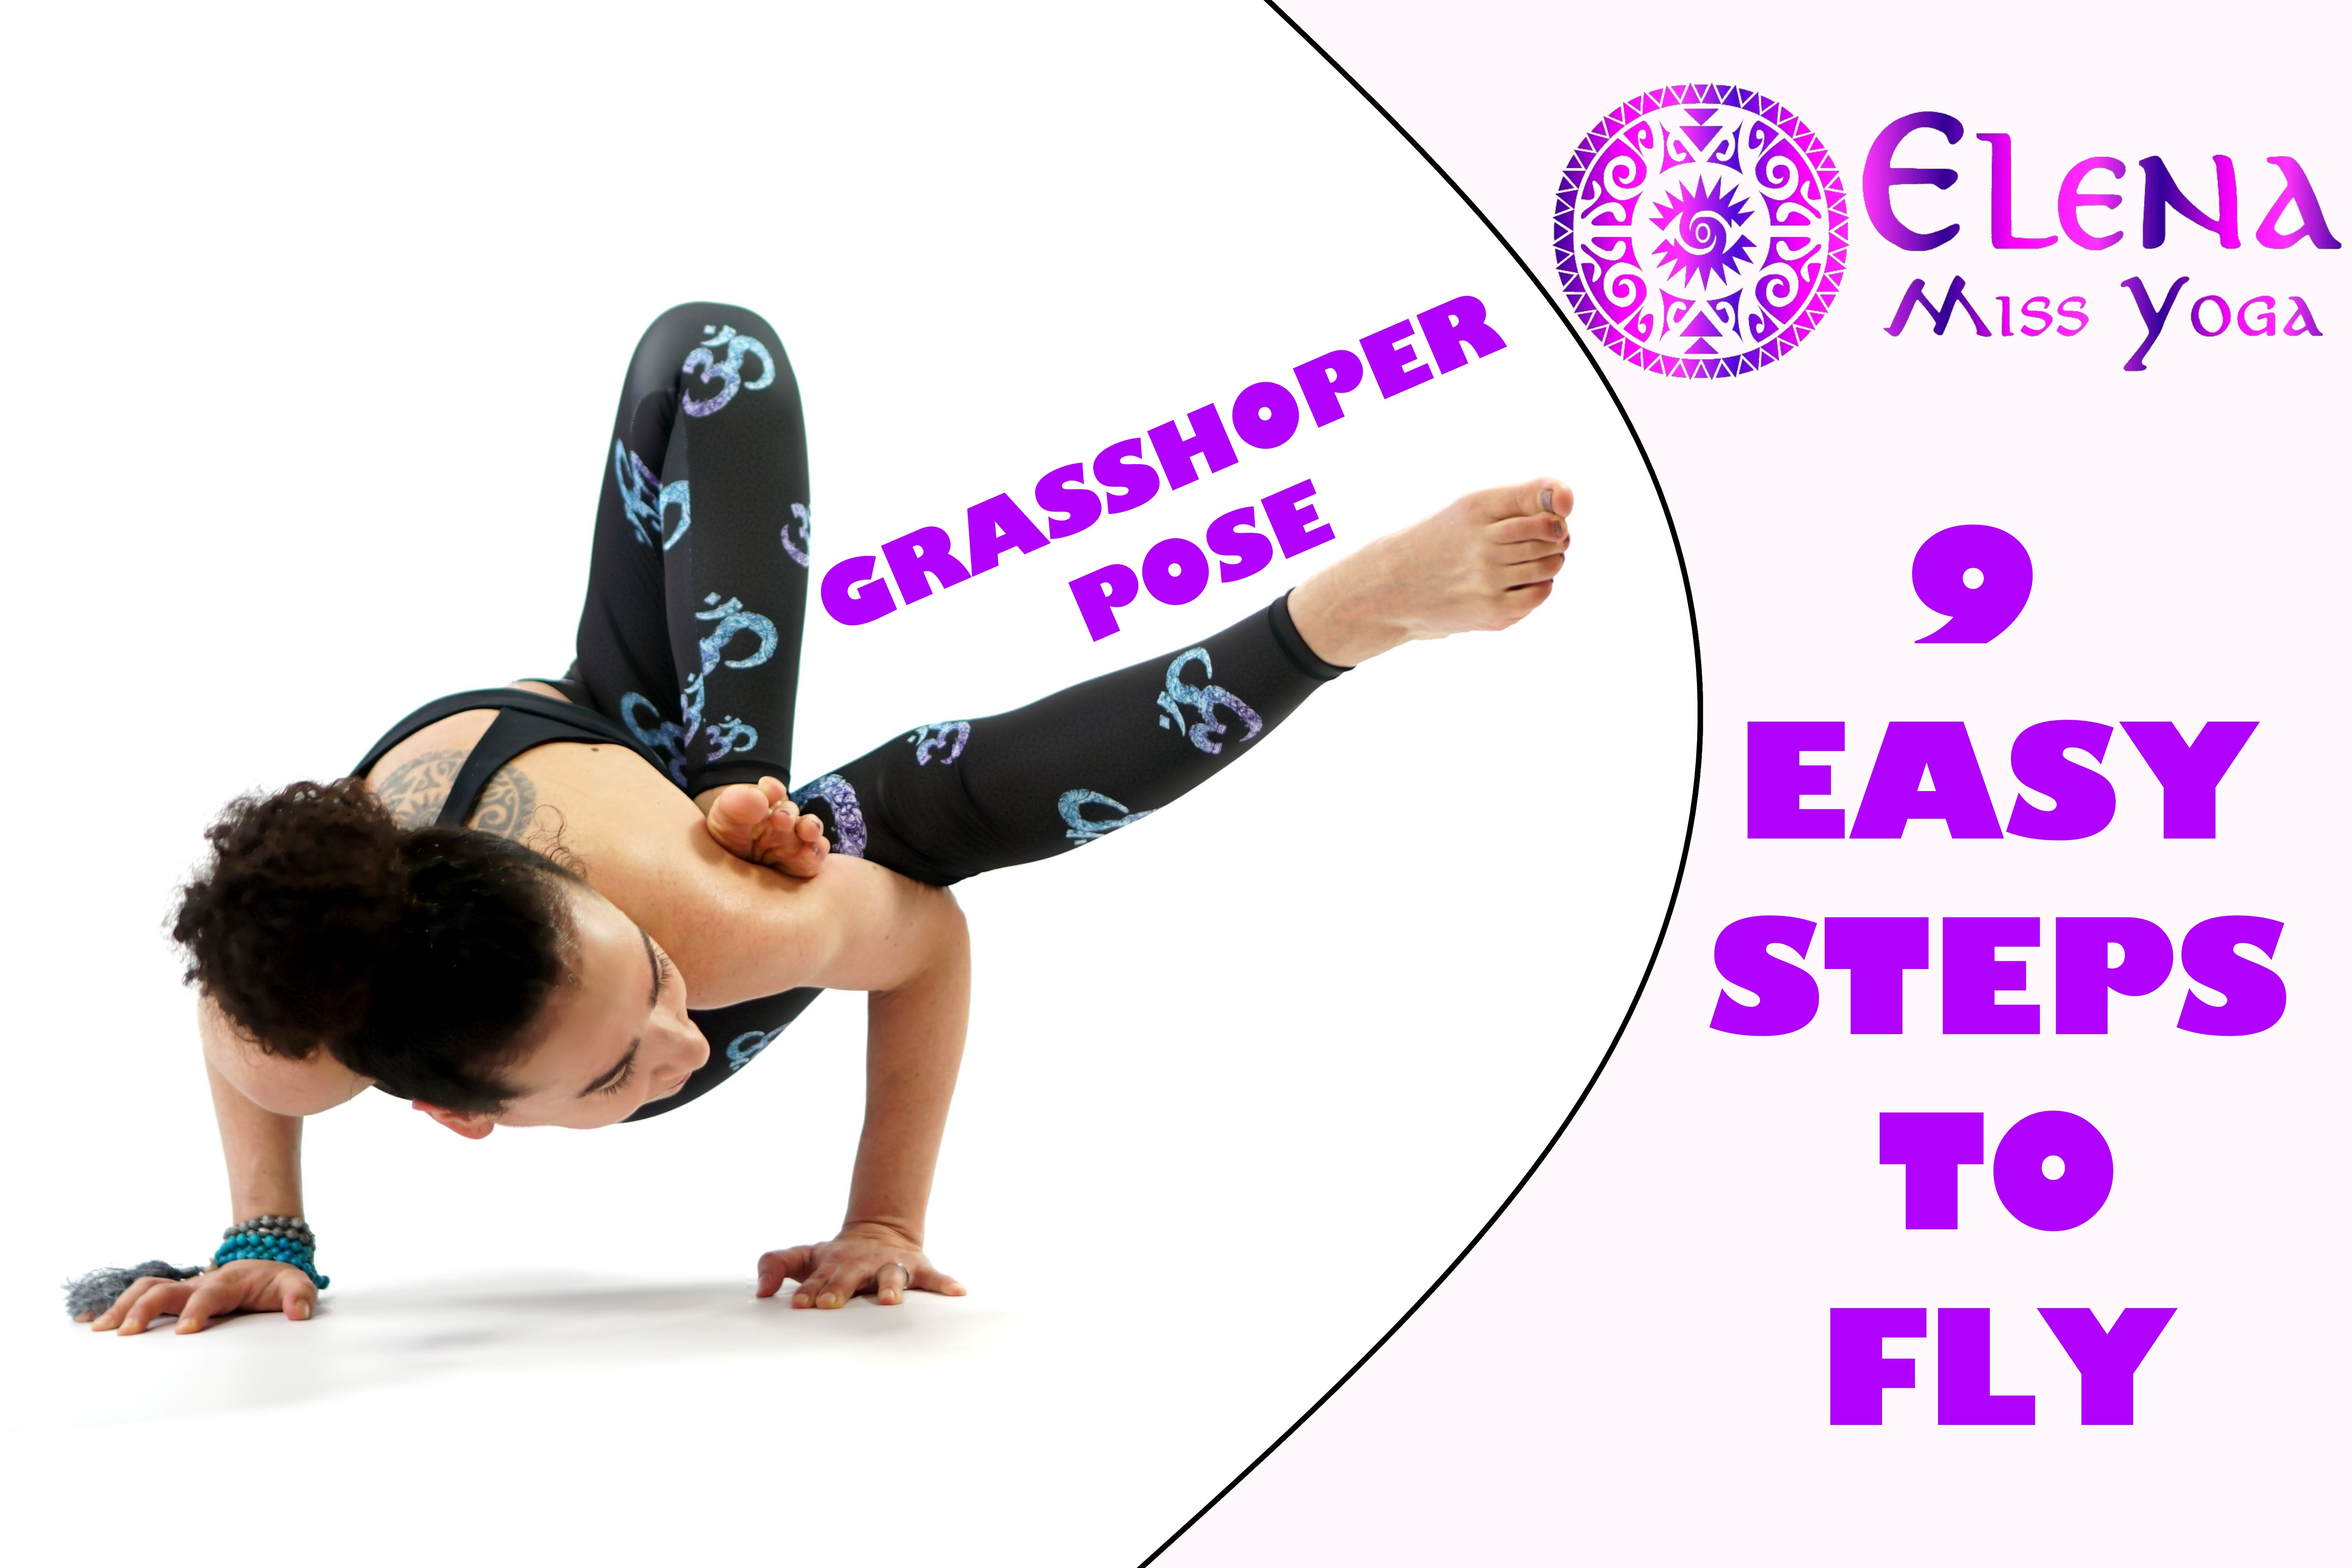 9 SIMPLE STEPS TO GRASSHOPPER POSE